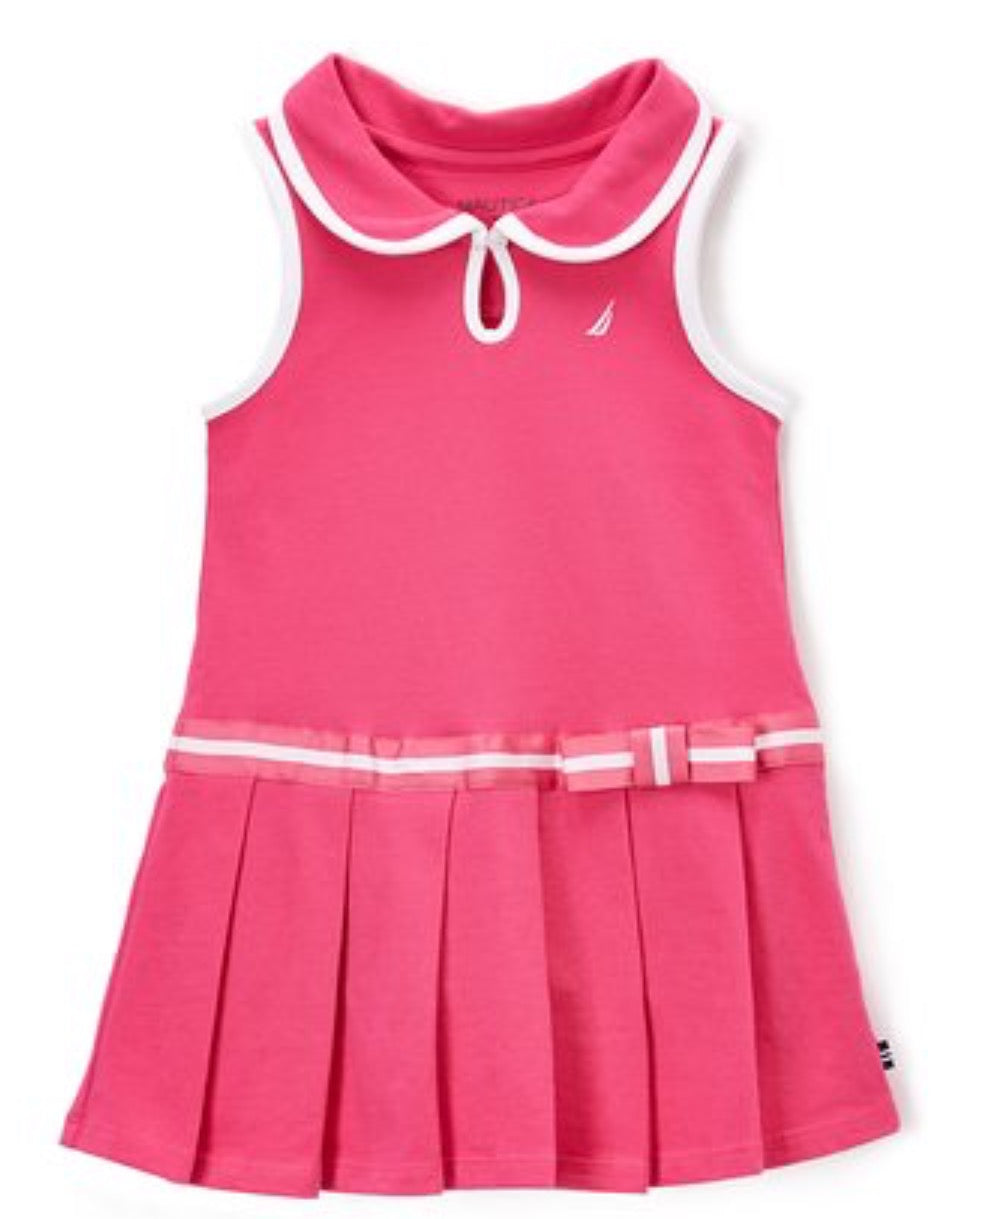 Girls Nautica Medium Pink Pleated Drop Waist Dress - Toddler